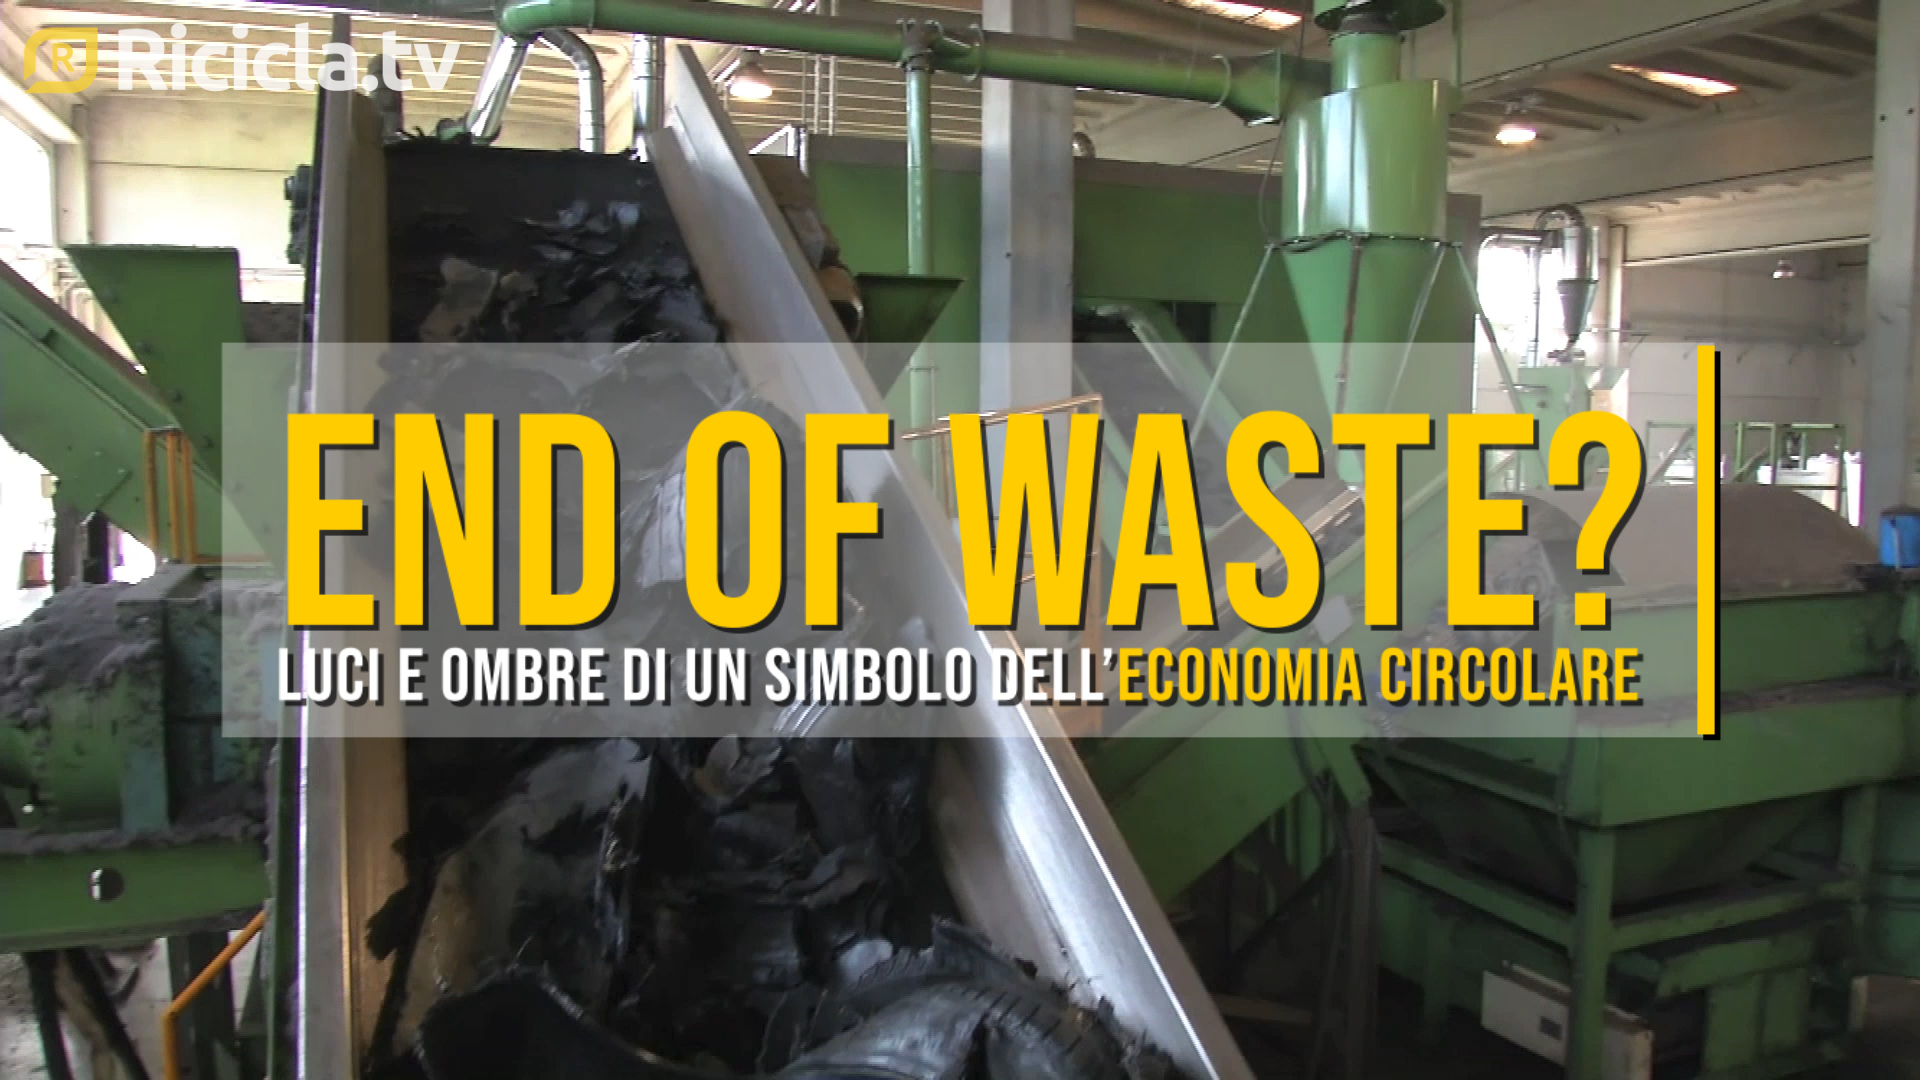 END OF WASTE, TRA LUCI E OMBRE